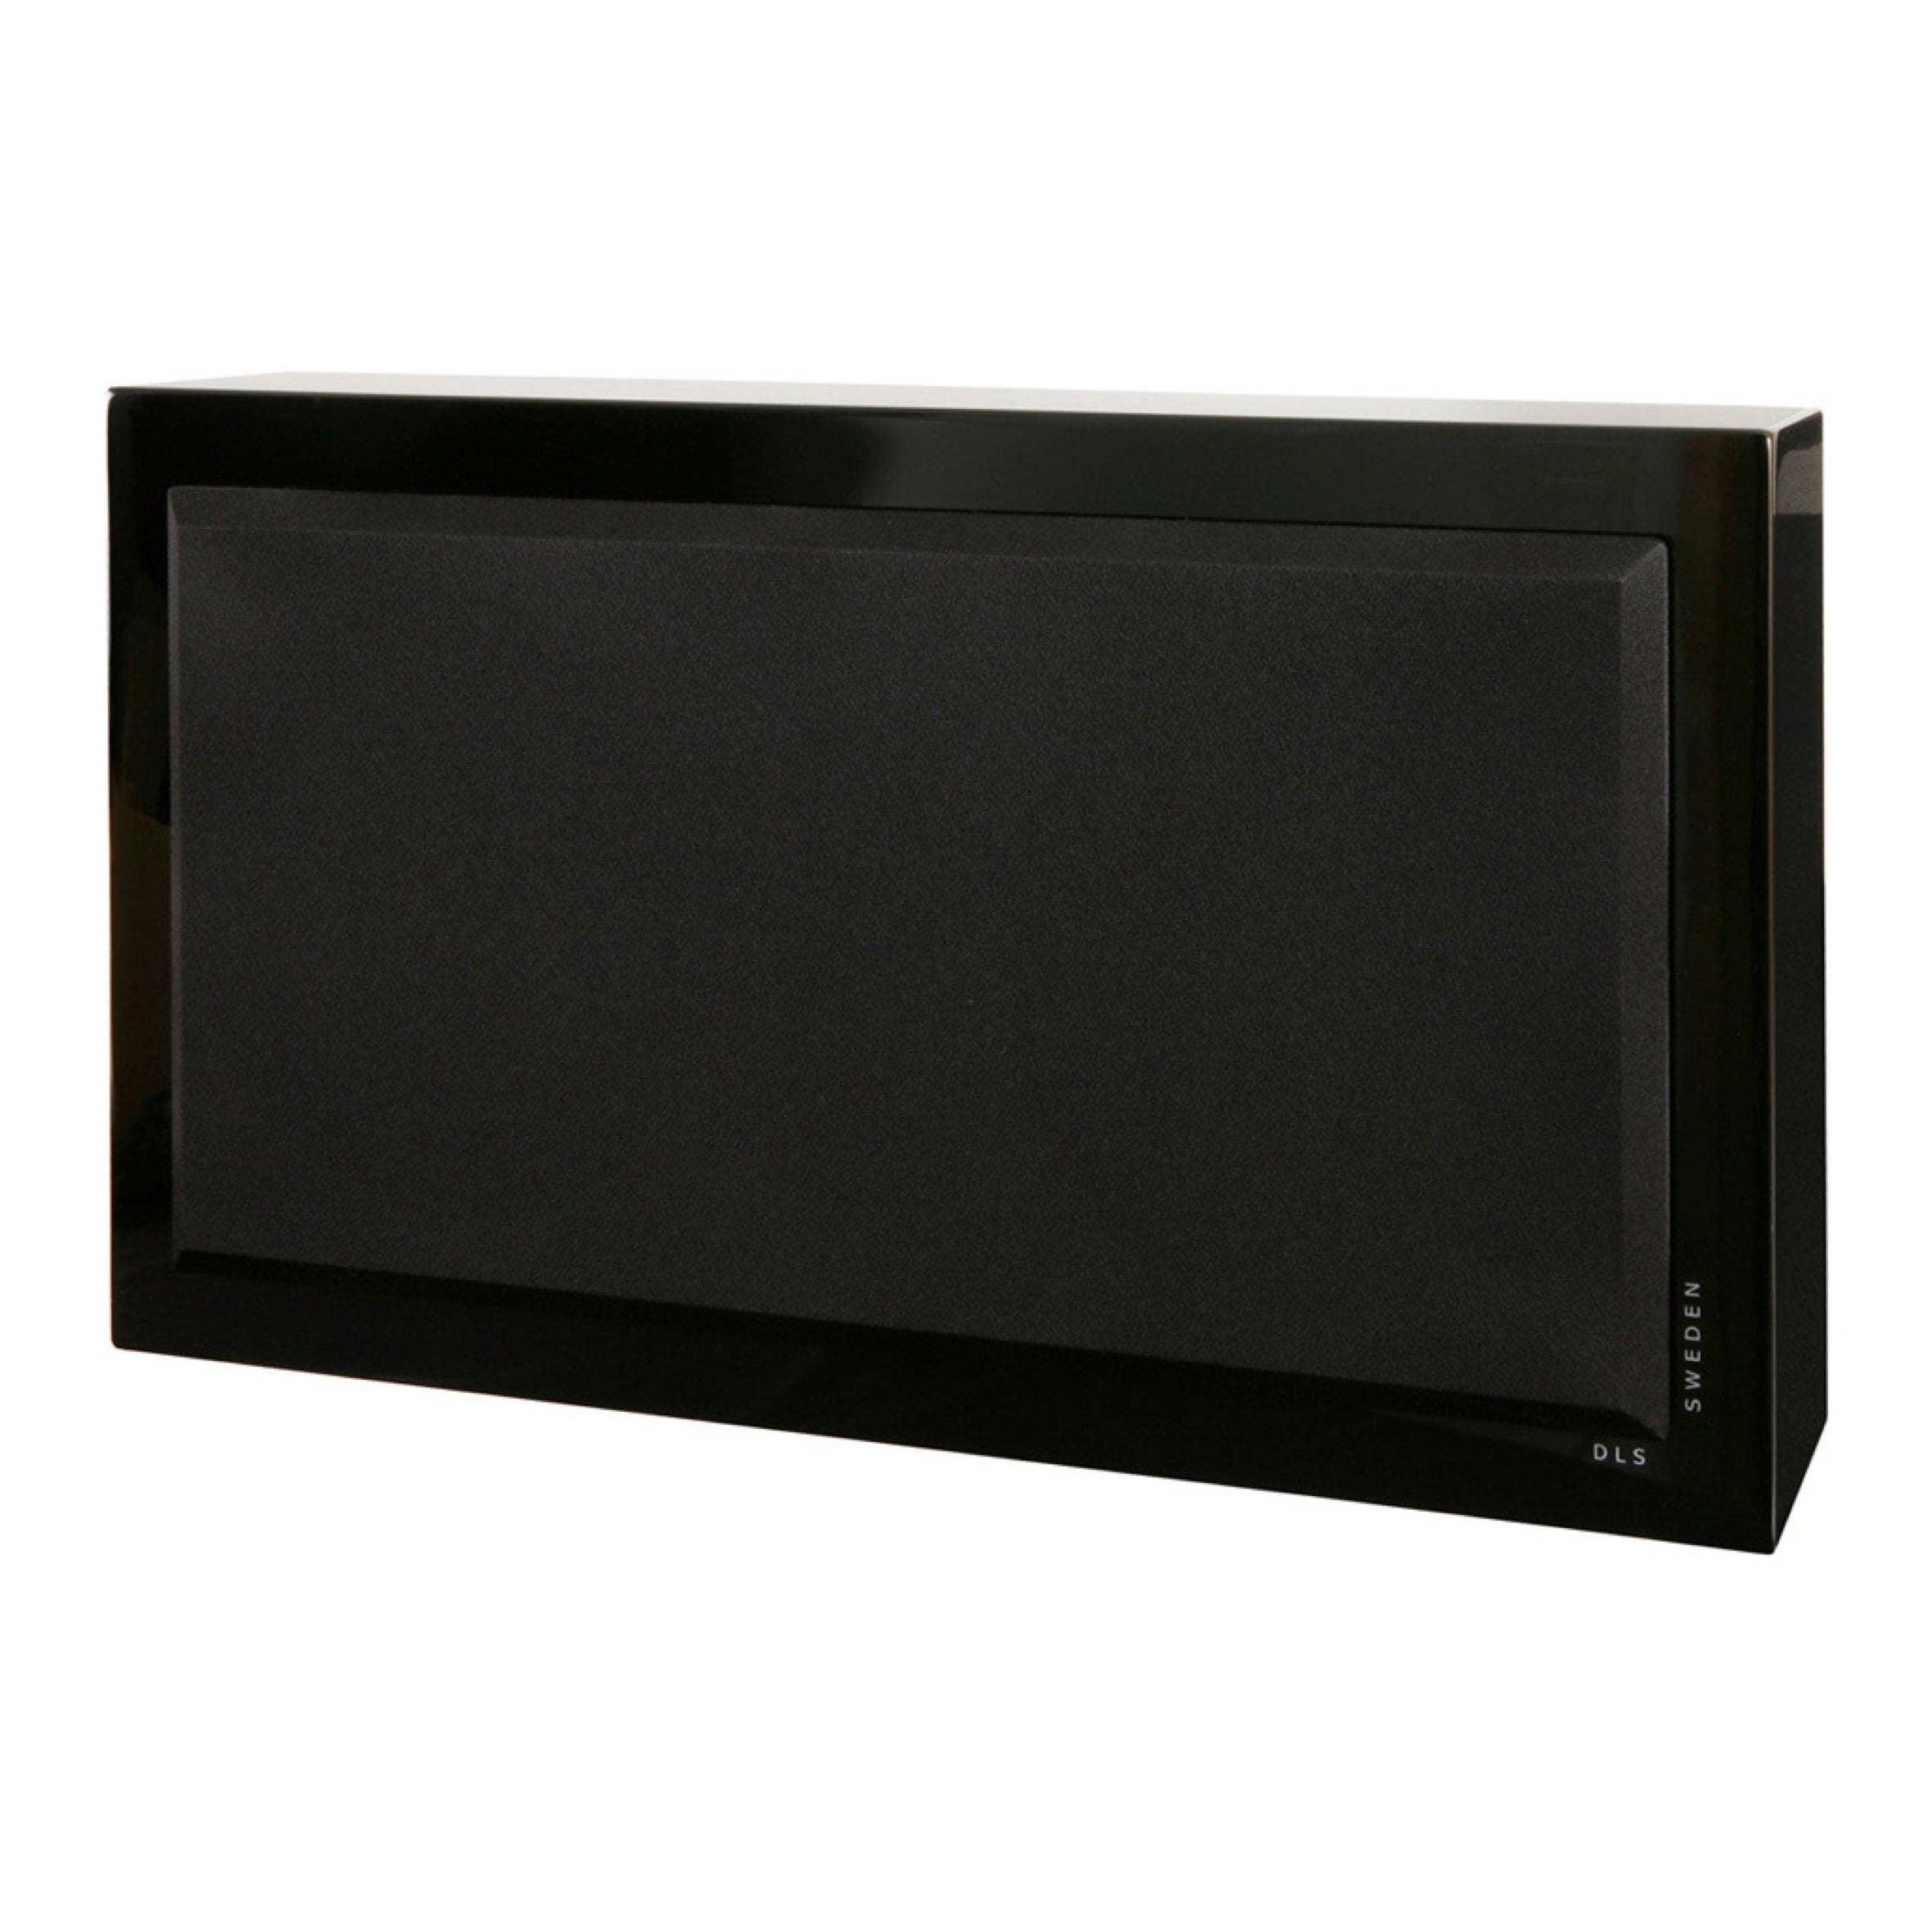 DLS Flatsub 8.2 - New active subwoofer 8